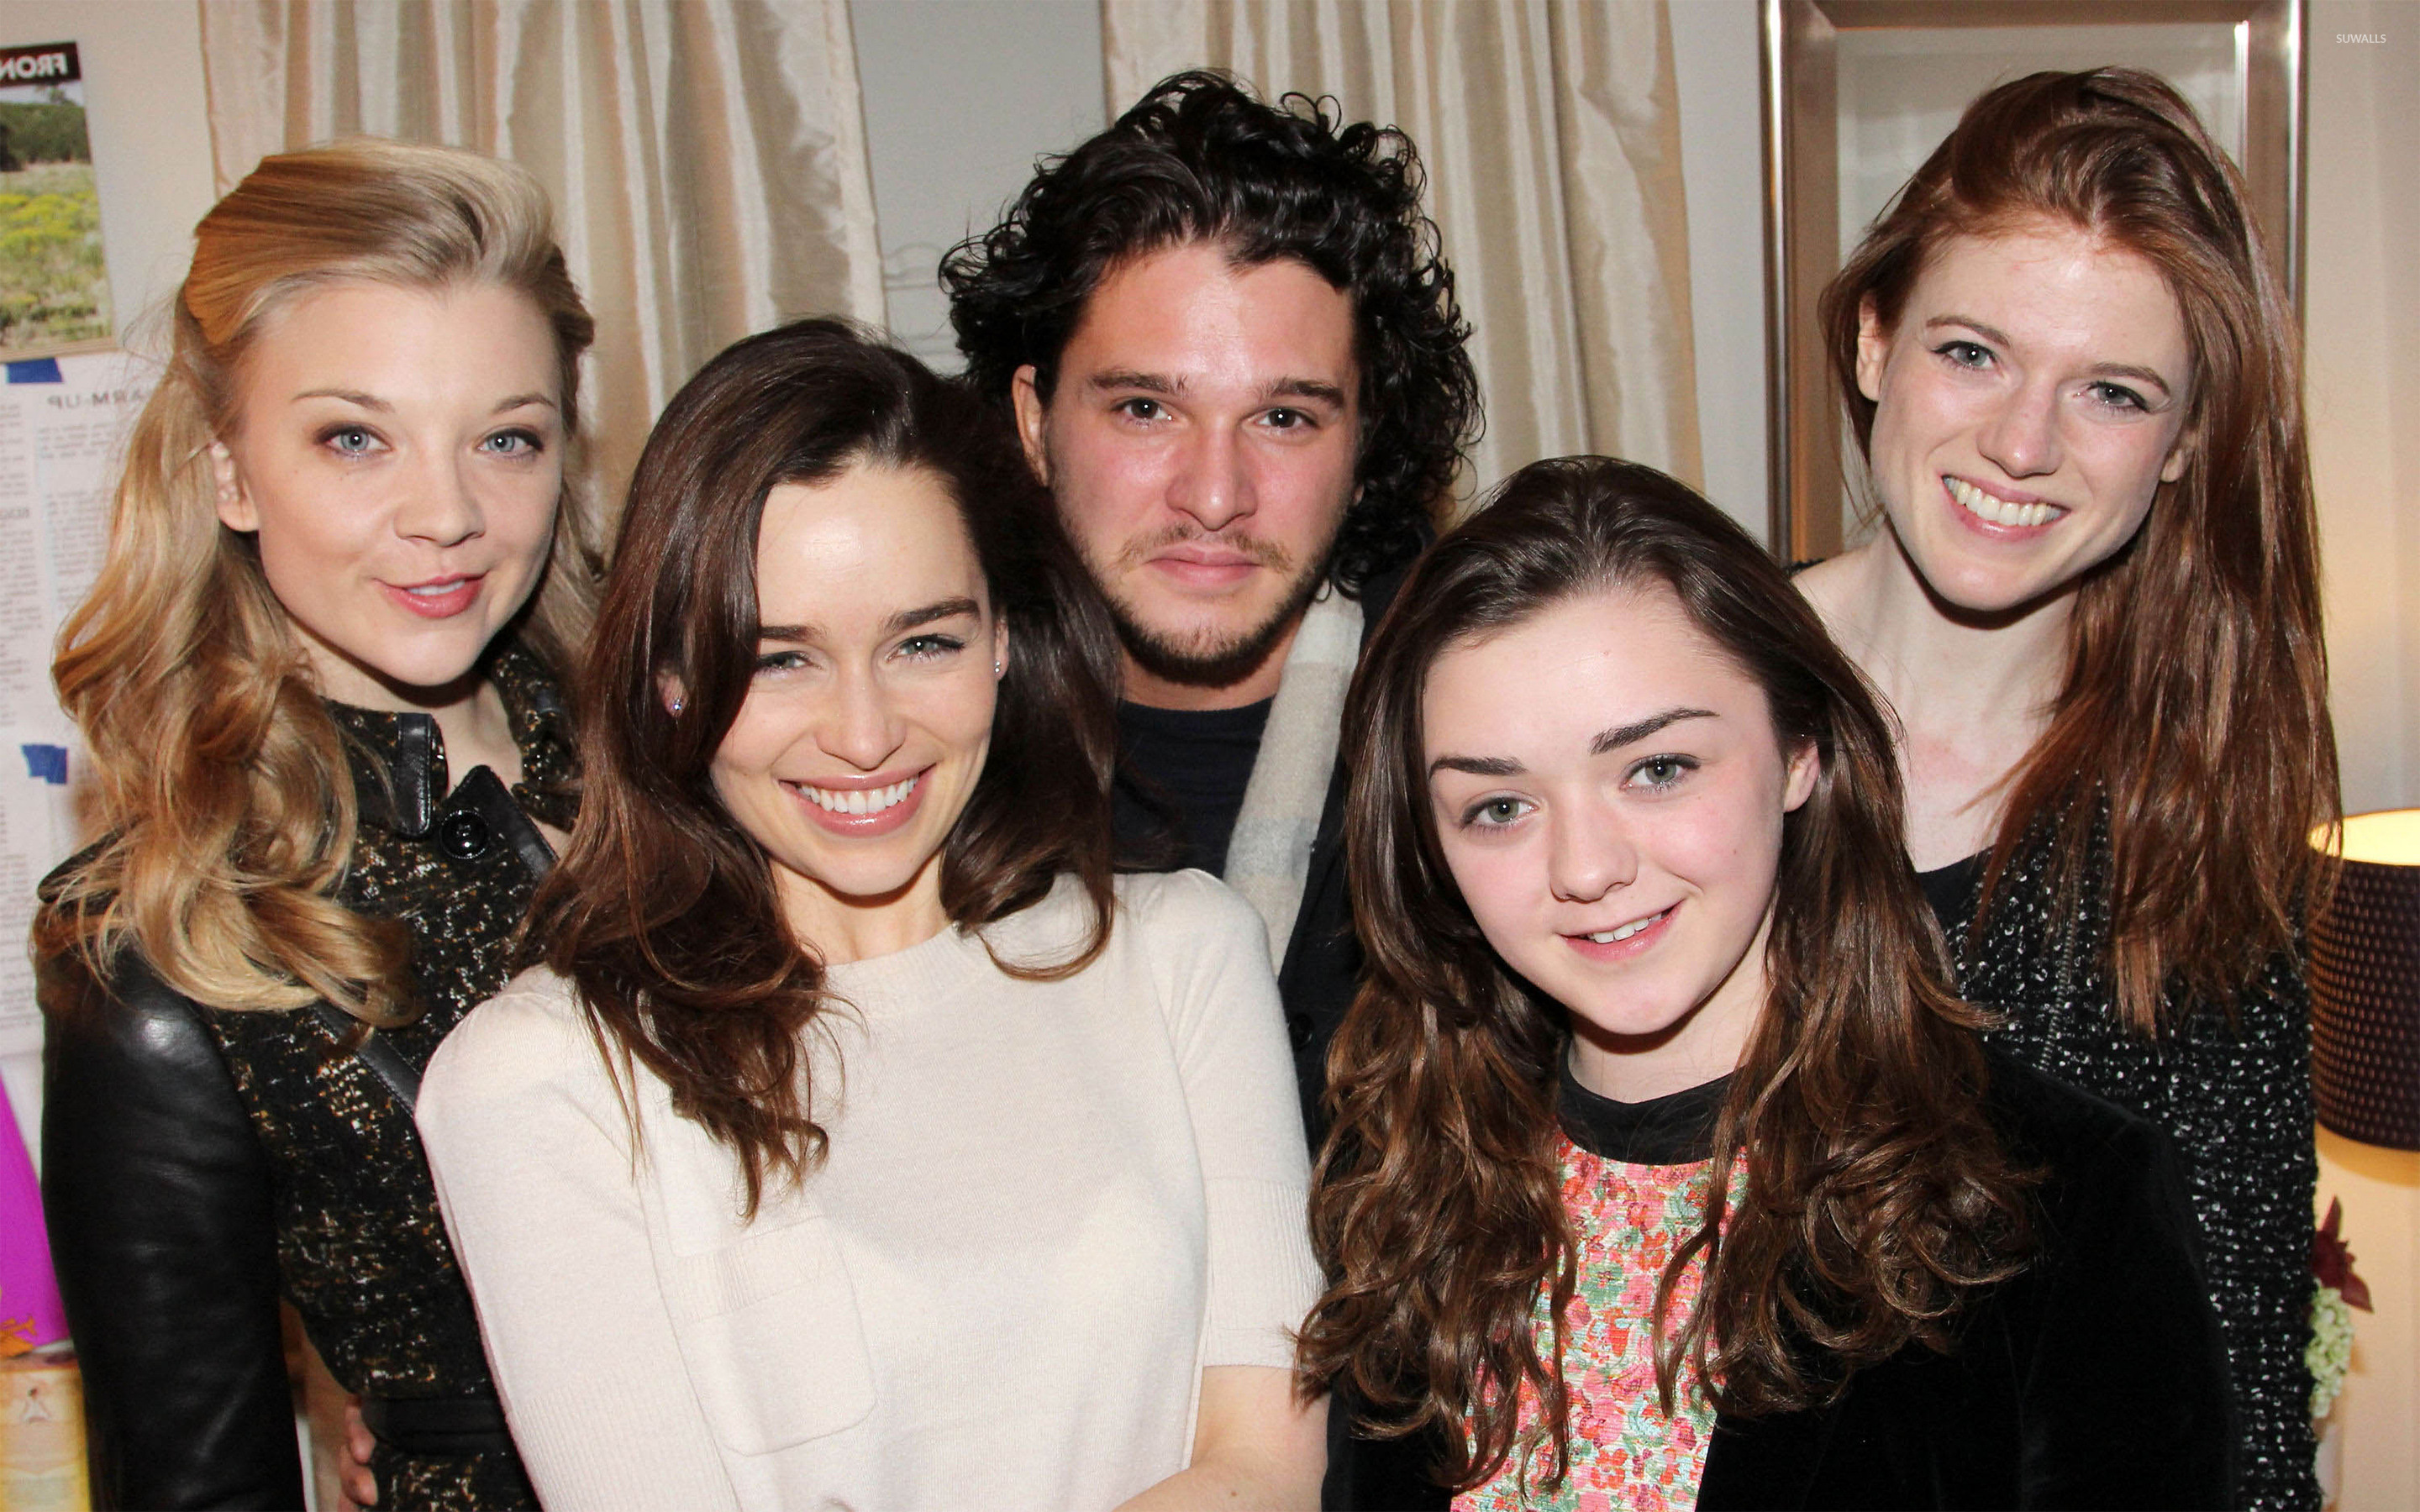 Watch See What The Game of Thrones' Cast Looks Like in RealLife video